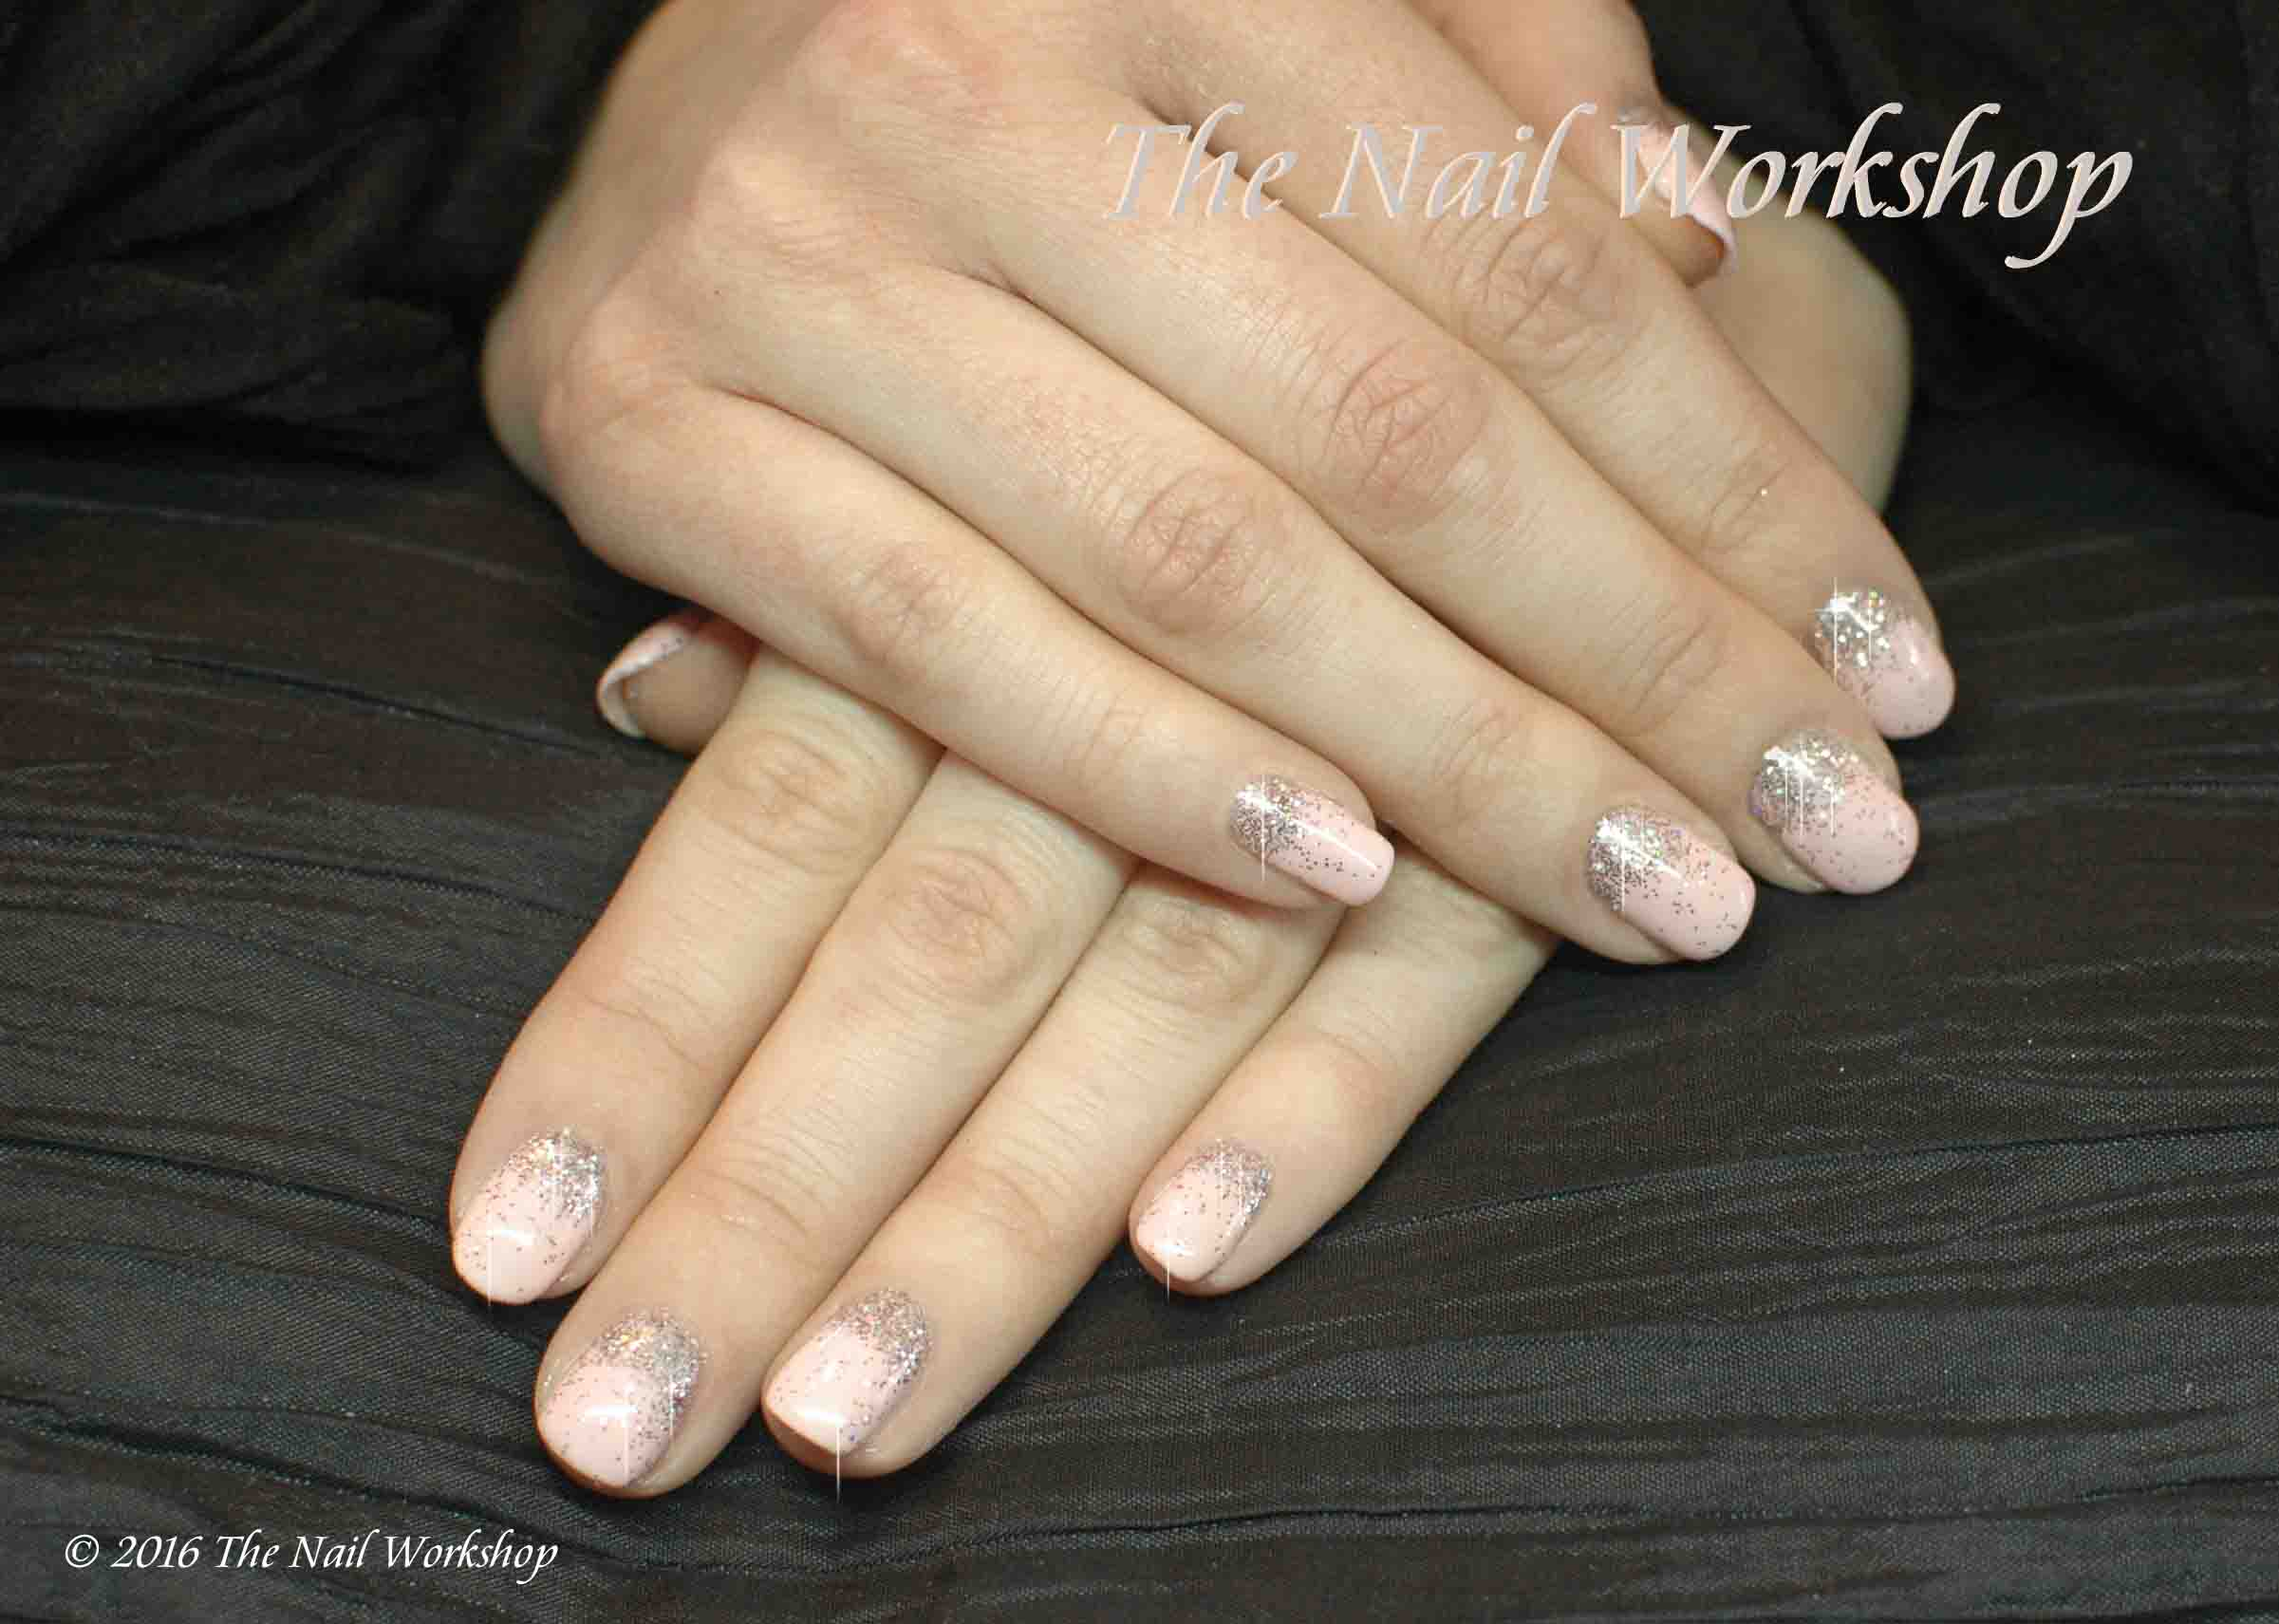 Gelish Hard Gel with Gold Glitter